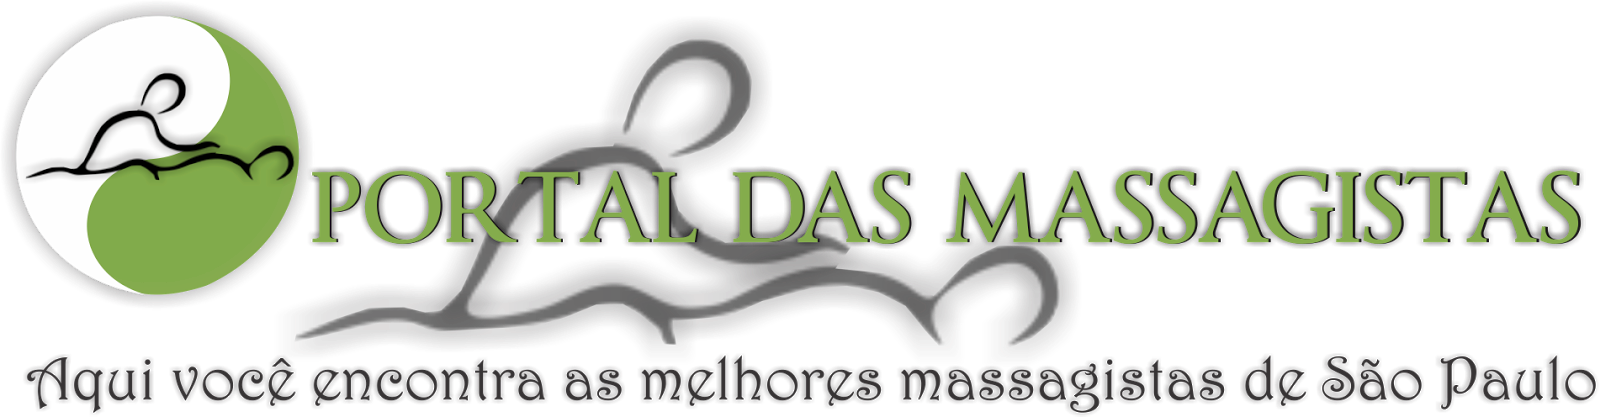 Massagem, Massagem Relaxante, Massagem Jardins, Massagem São Paulo, Massagistas SP, Massagista 24hs